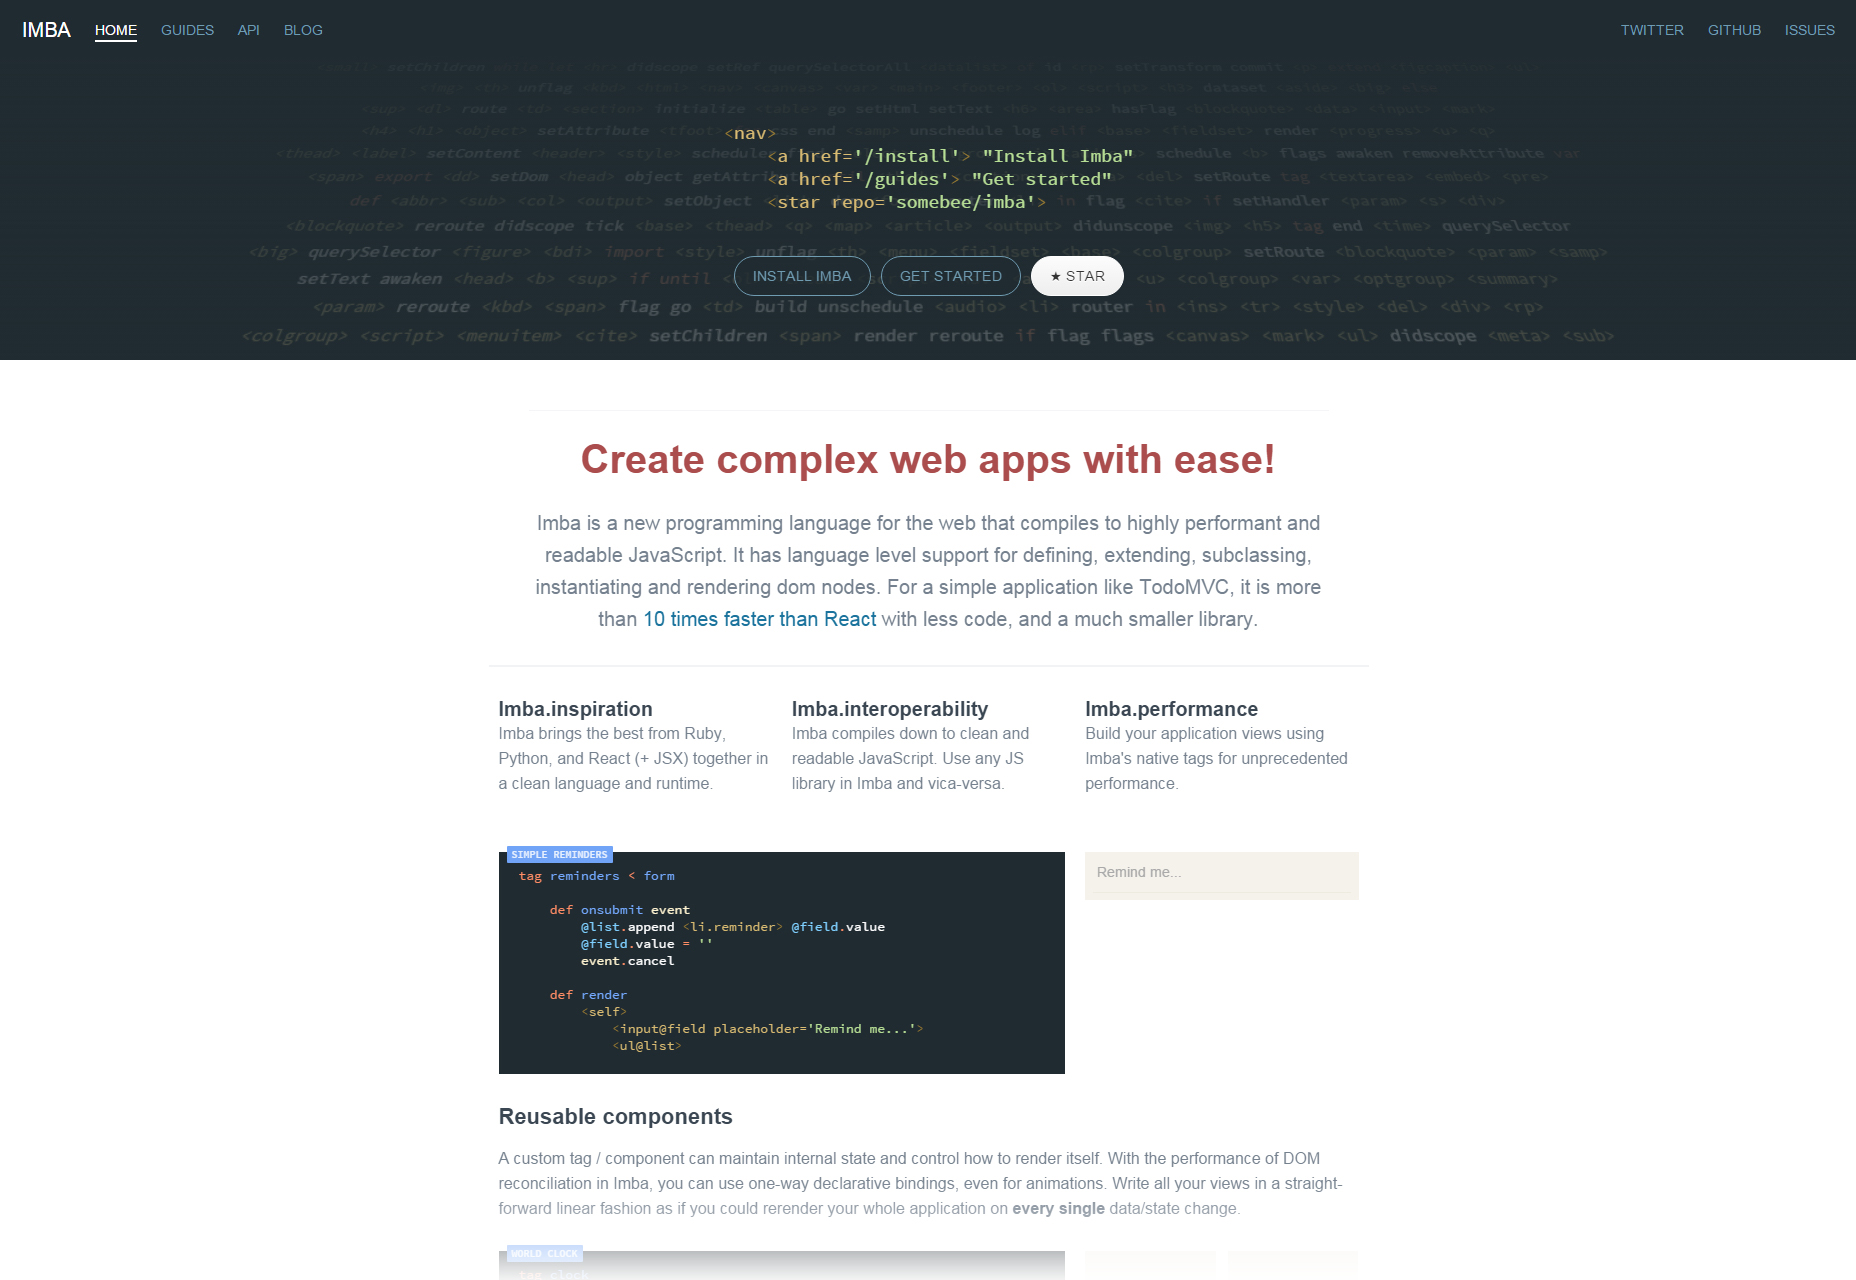 imba-easy-web-applications-language